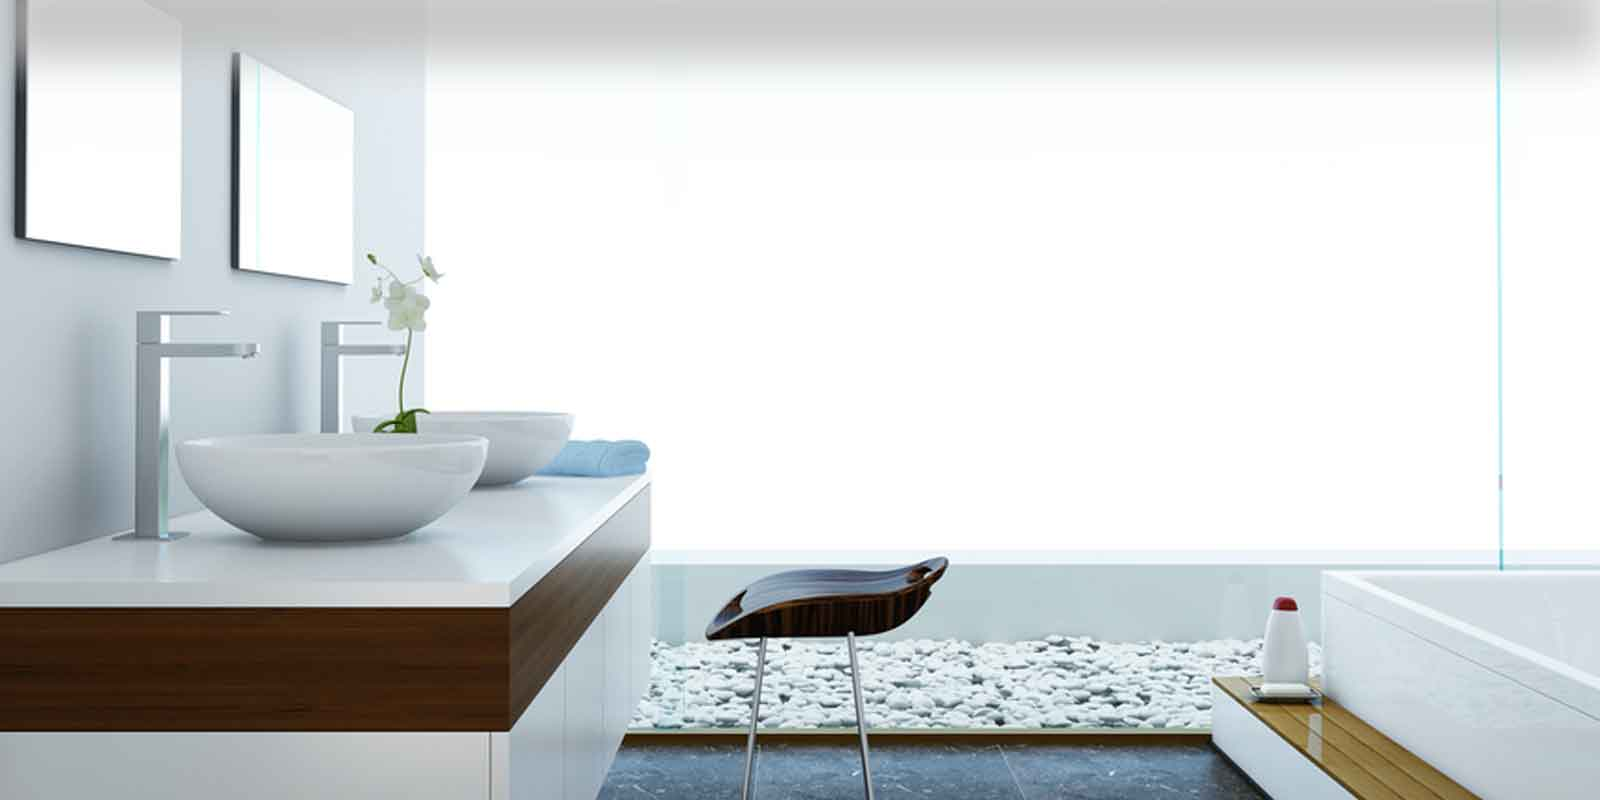 Bathroom cabinetry solutions Sydney